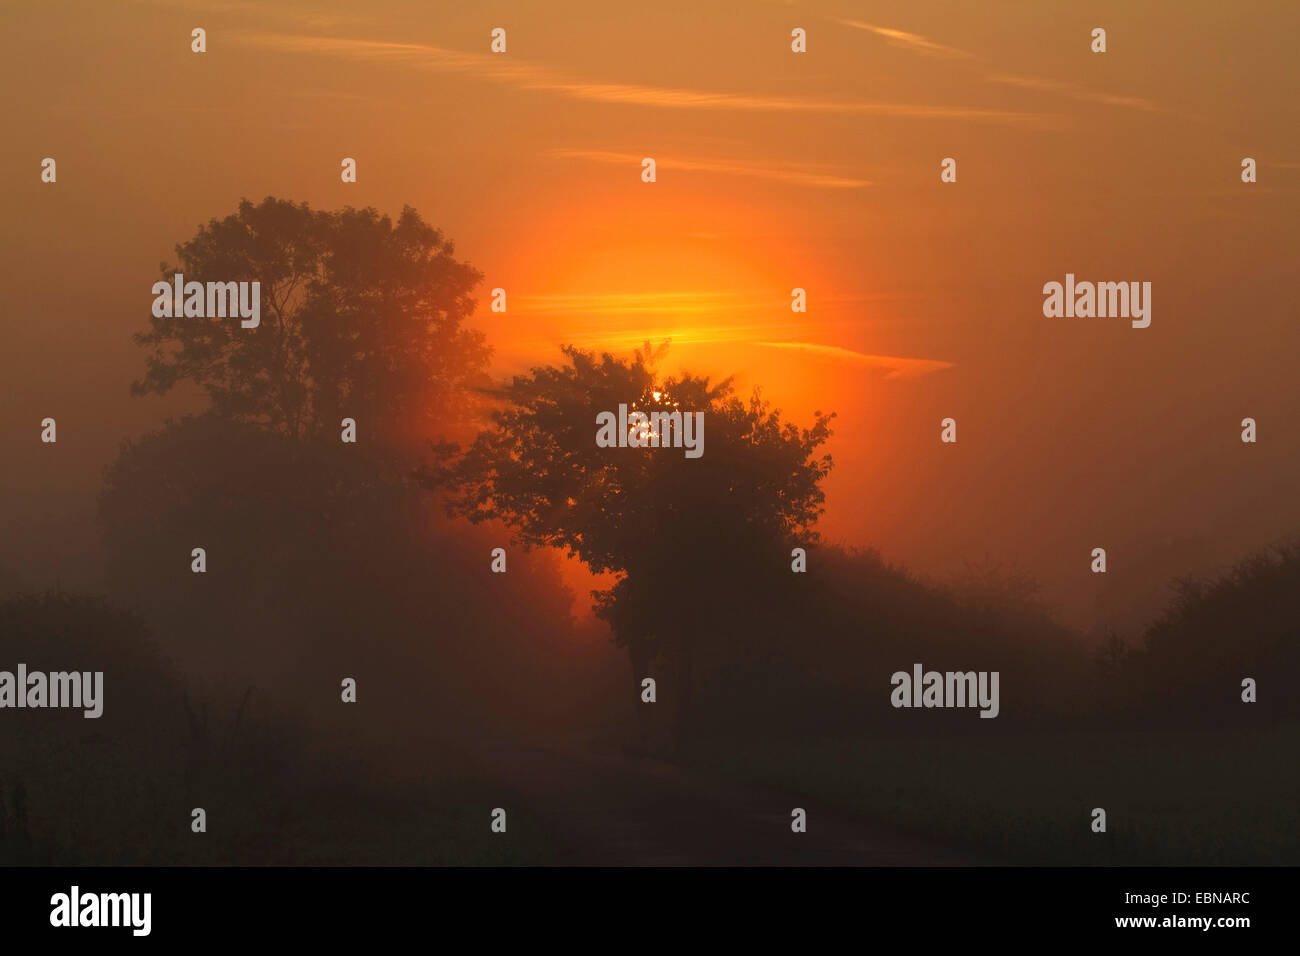 silhouettes of trees in morning damp at sunrise, North Rhine-Westphalia, Muensterland - Stock Image